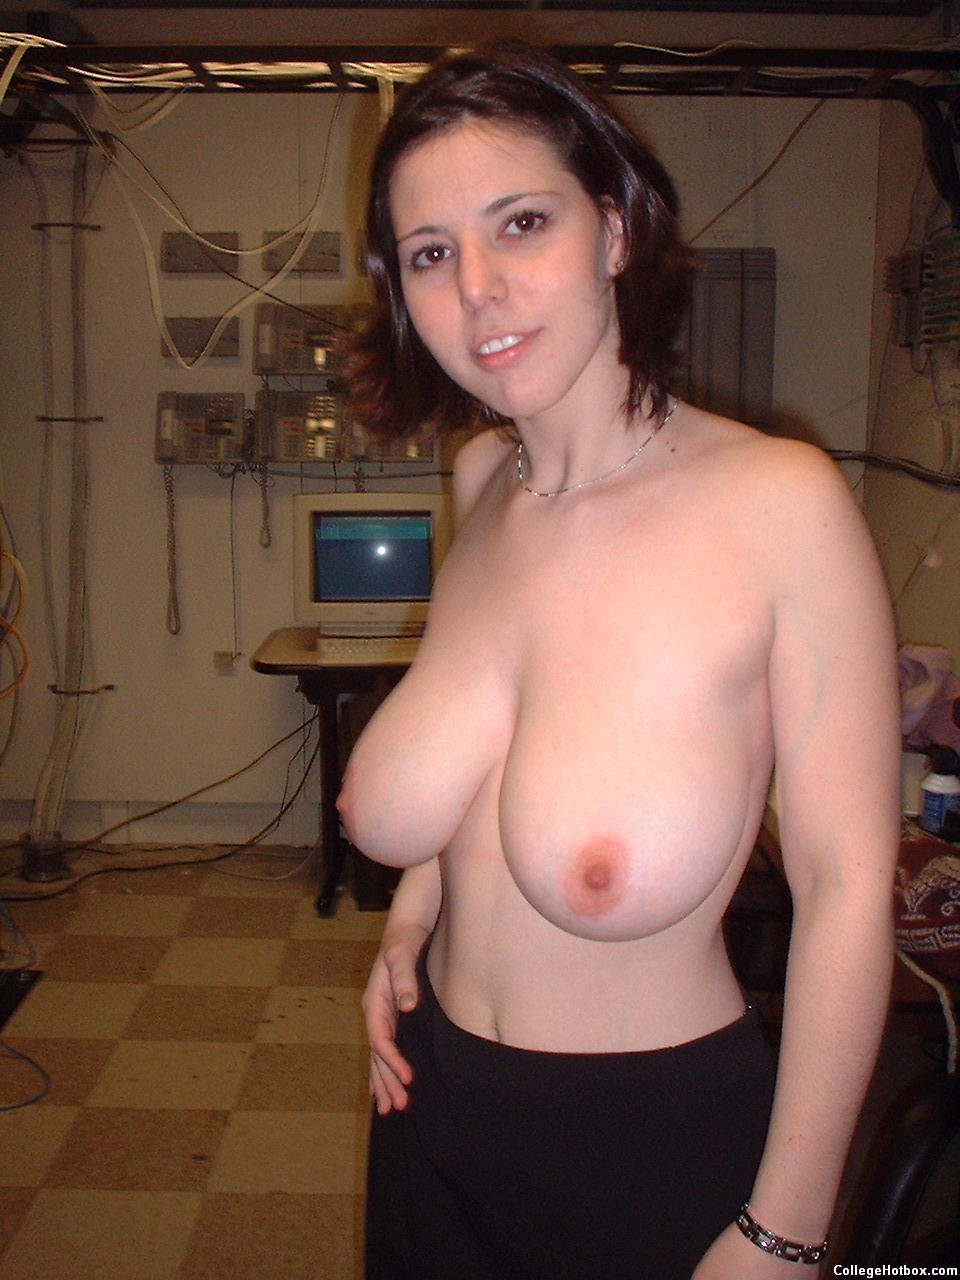 Pov Big Tits Girlfriend